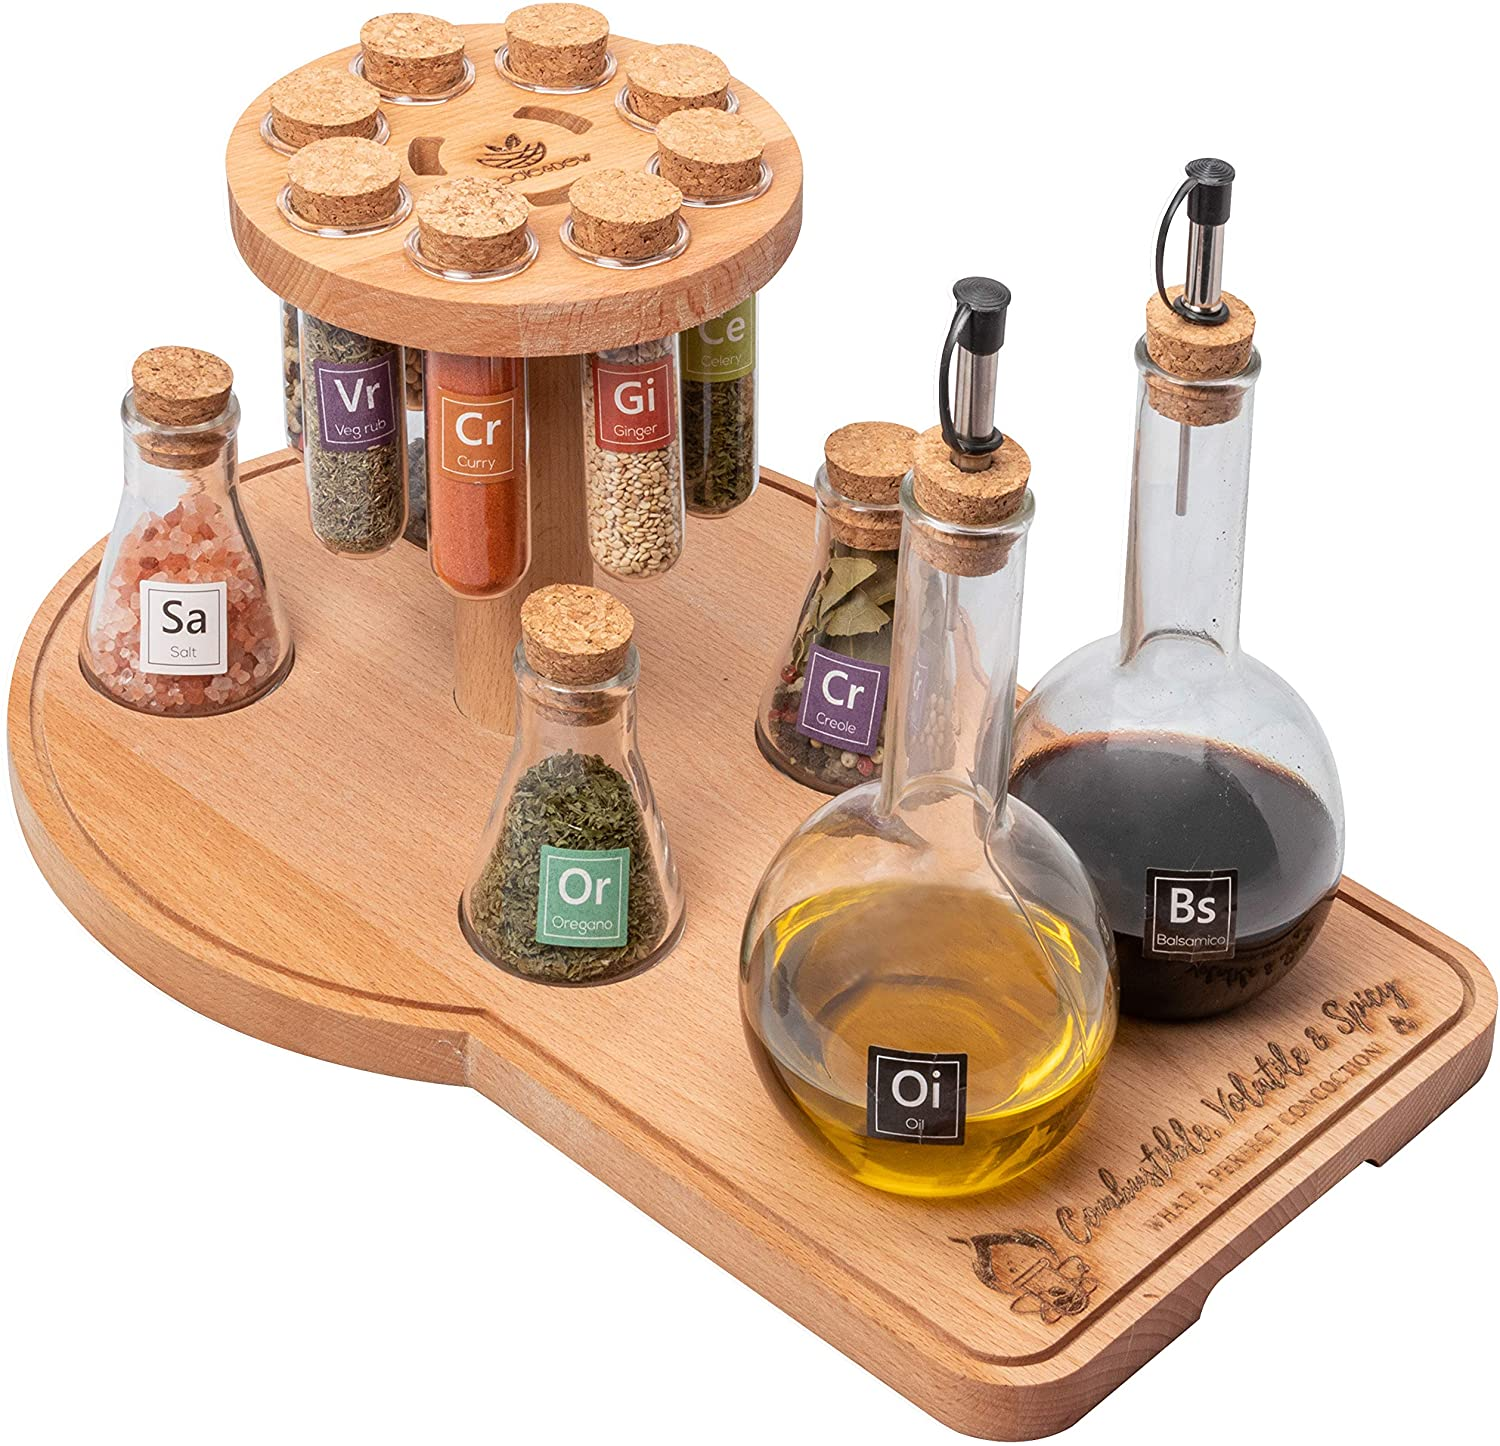 science-gifts-spice-rack